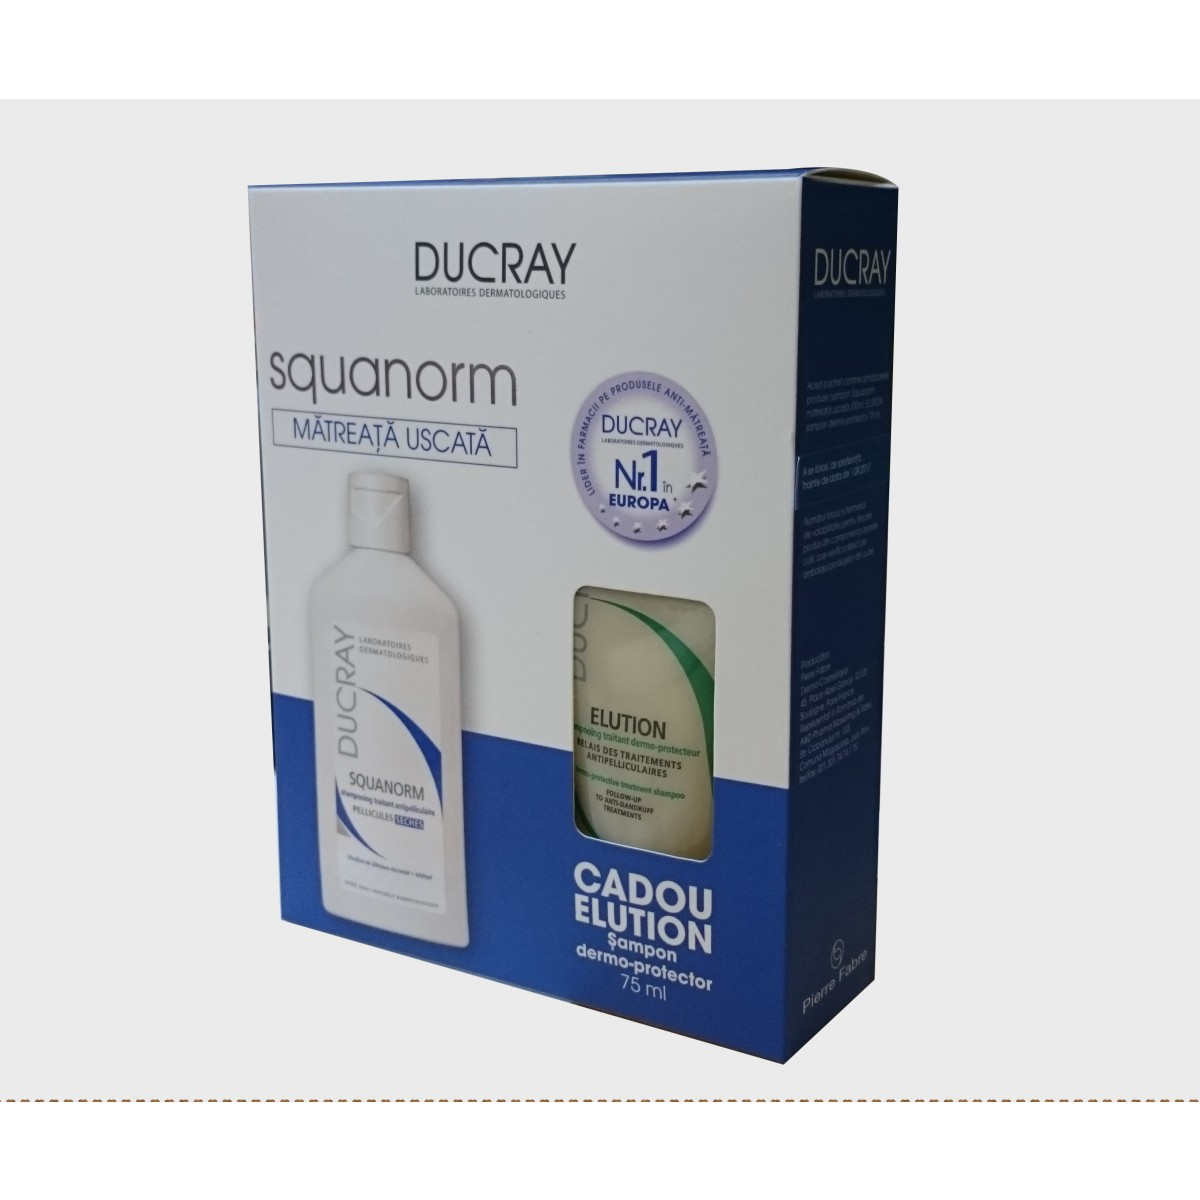 Ducray Squanorm Sampon matreata uscata ,200ml